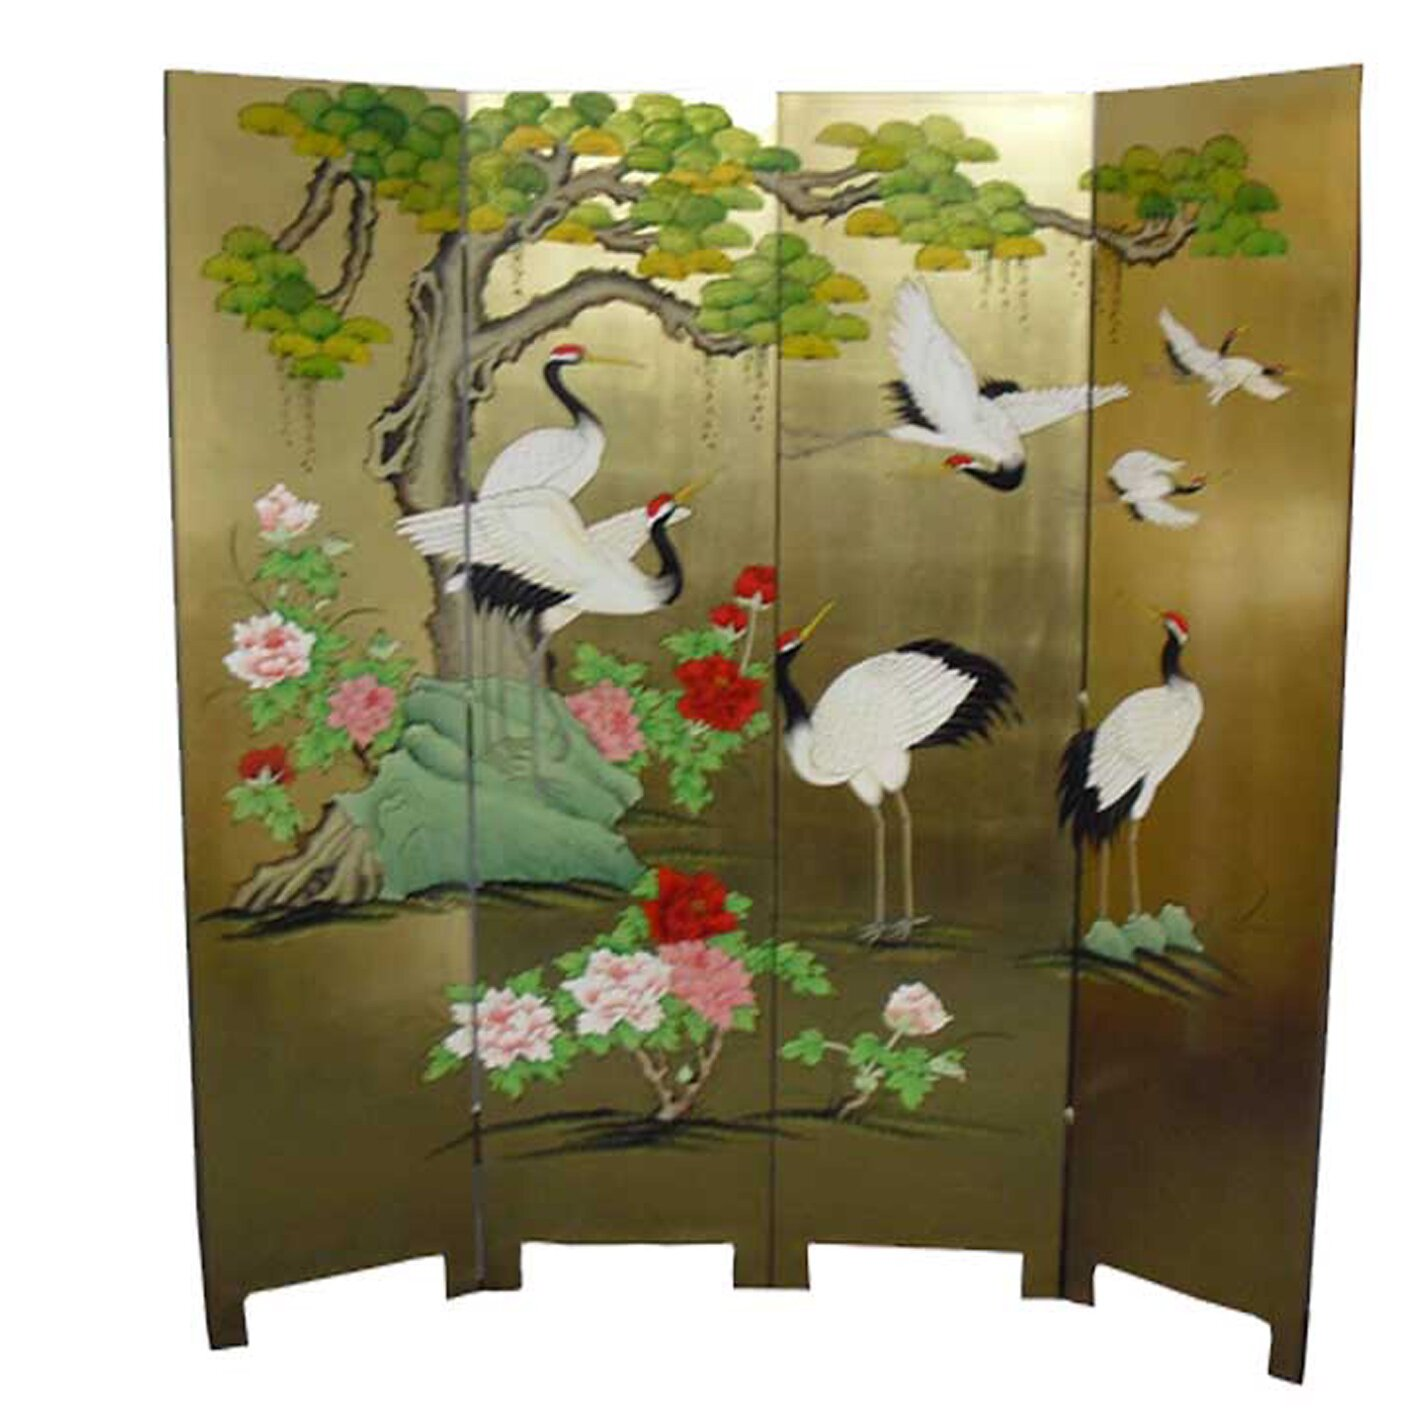 Grand international decor 182cm x 180cm 4 panel room for Grand international decor